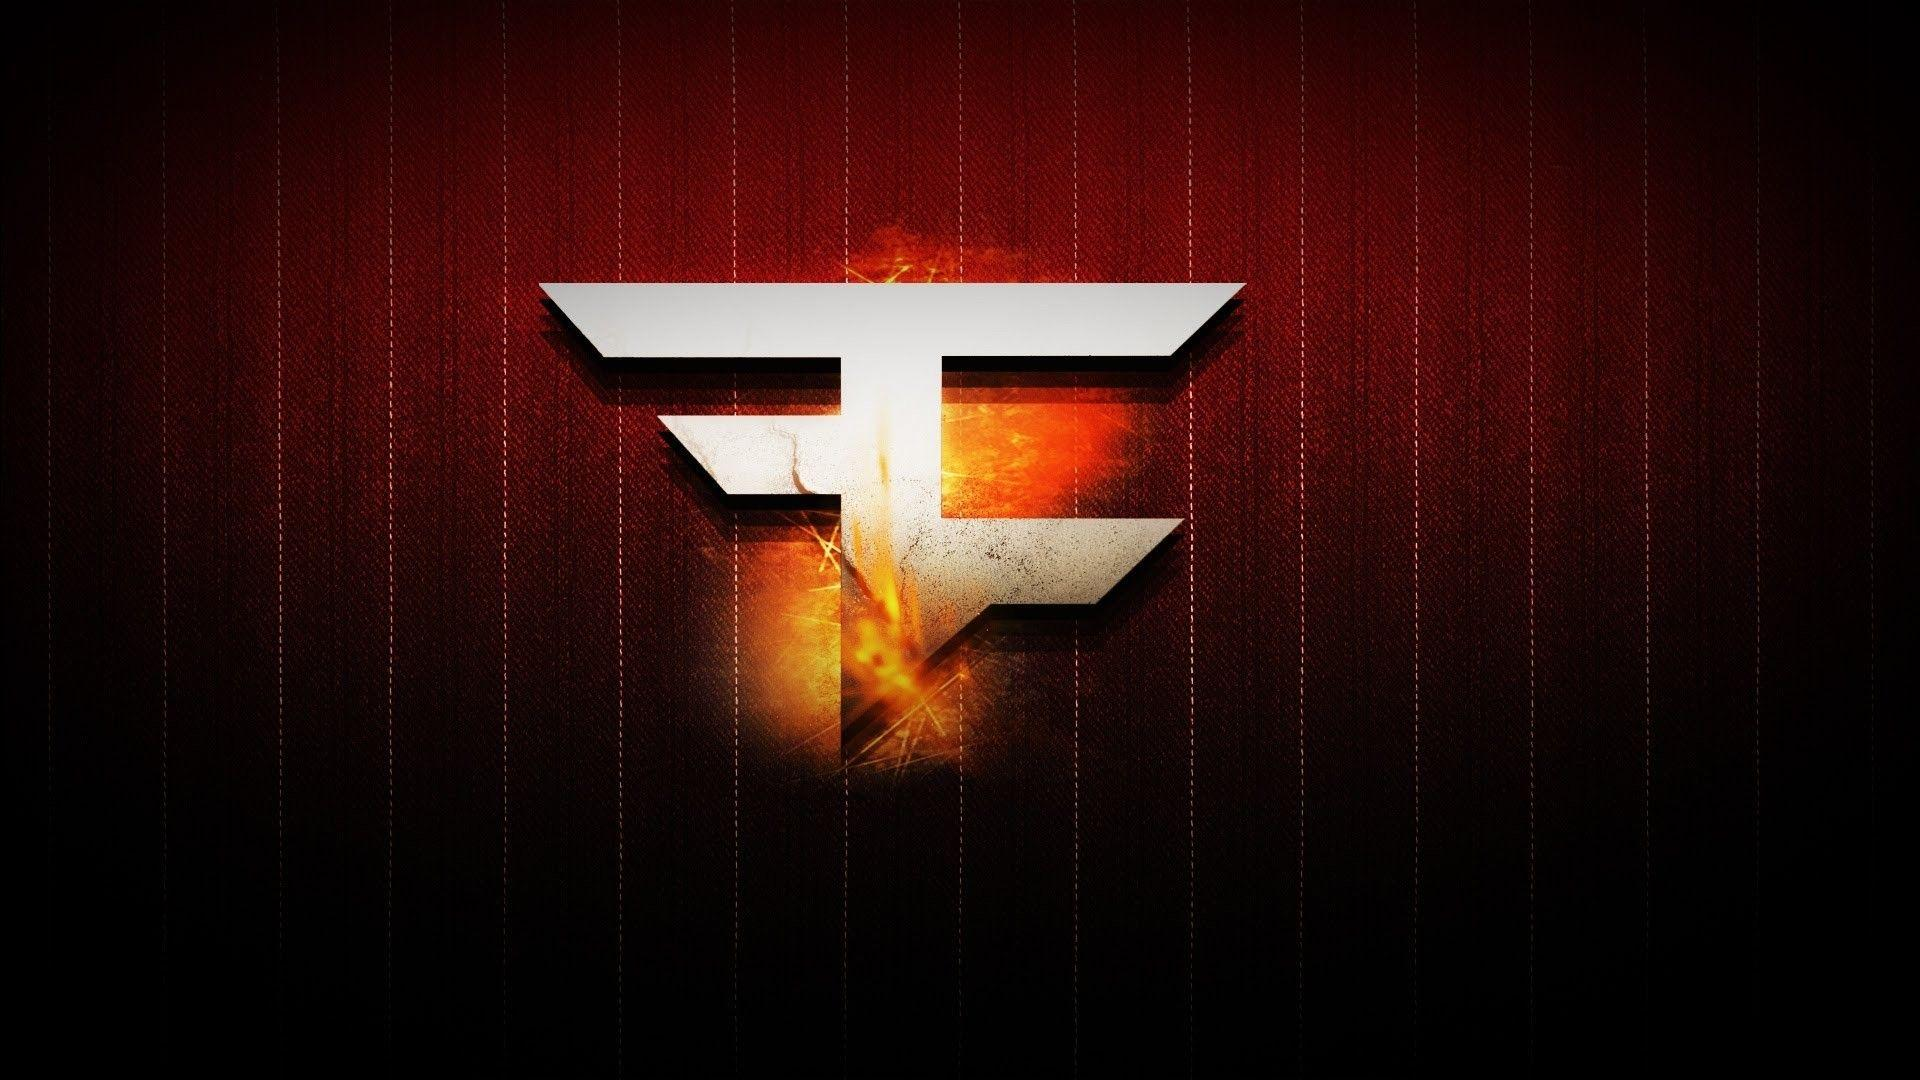 Cool Faze Wallpapers